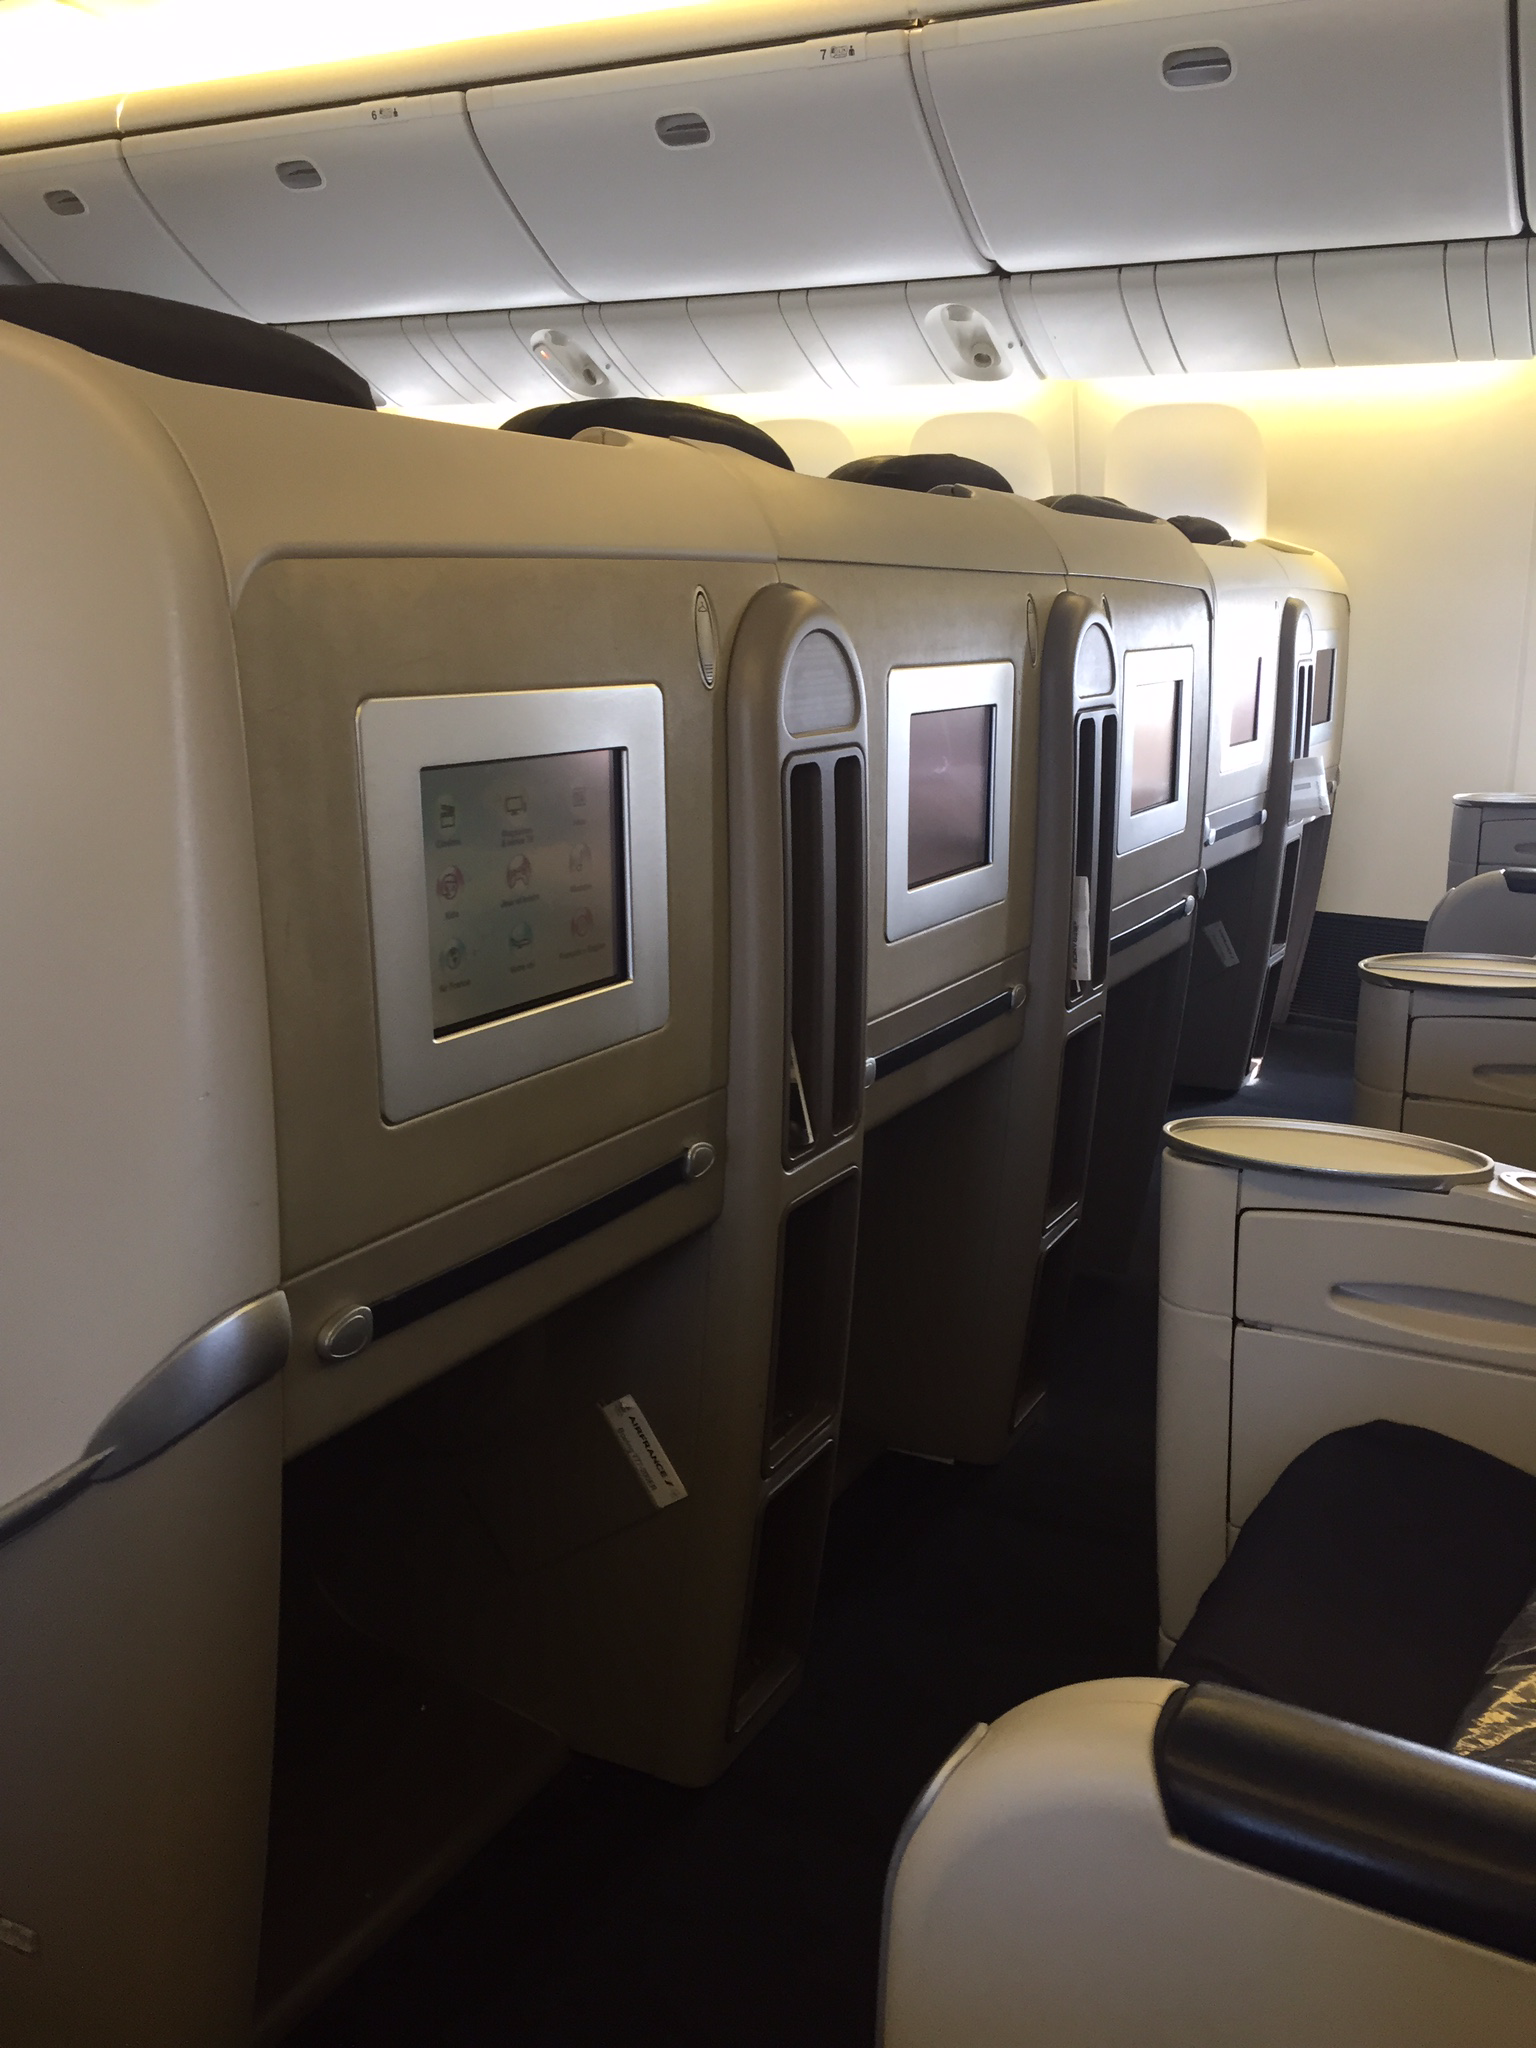 Air France old business class middle seats